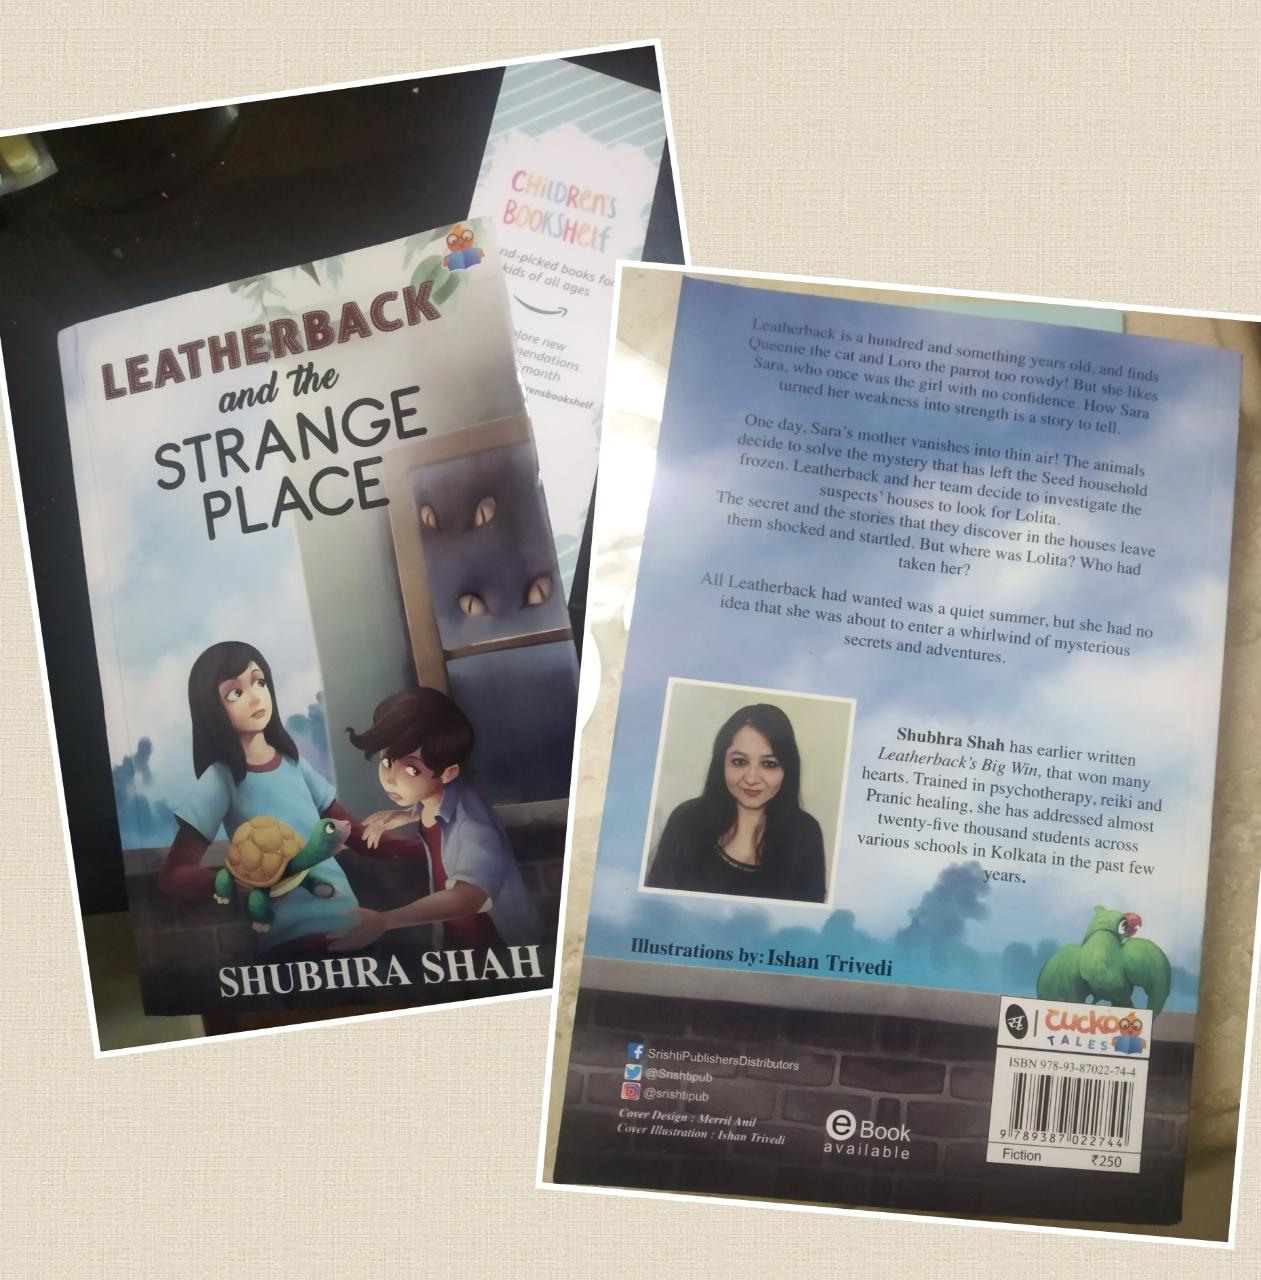 Leatherback and the Strange Place- Entertaining Read for Kids and Adults alike